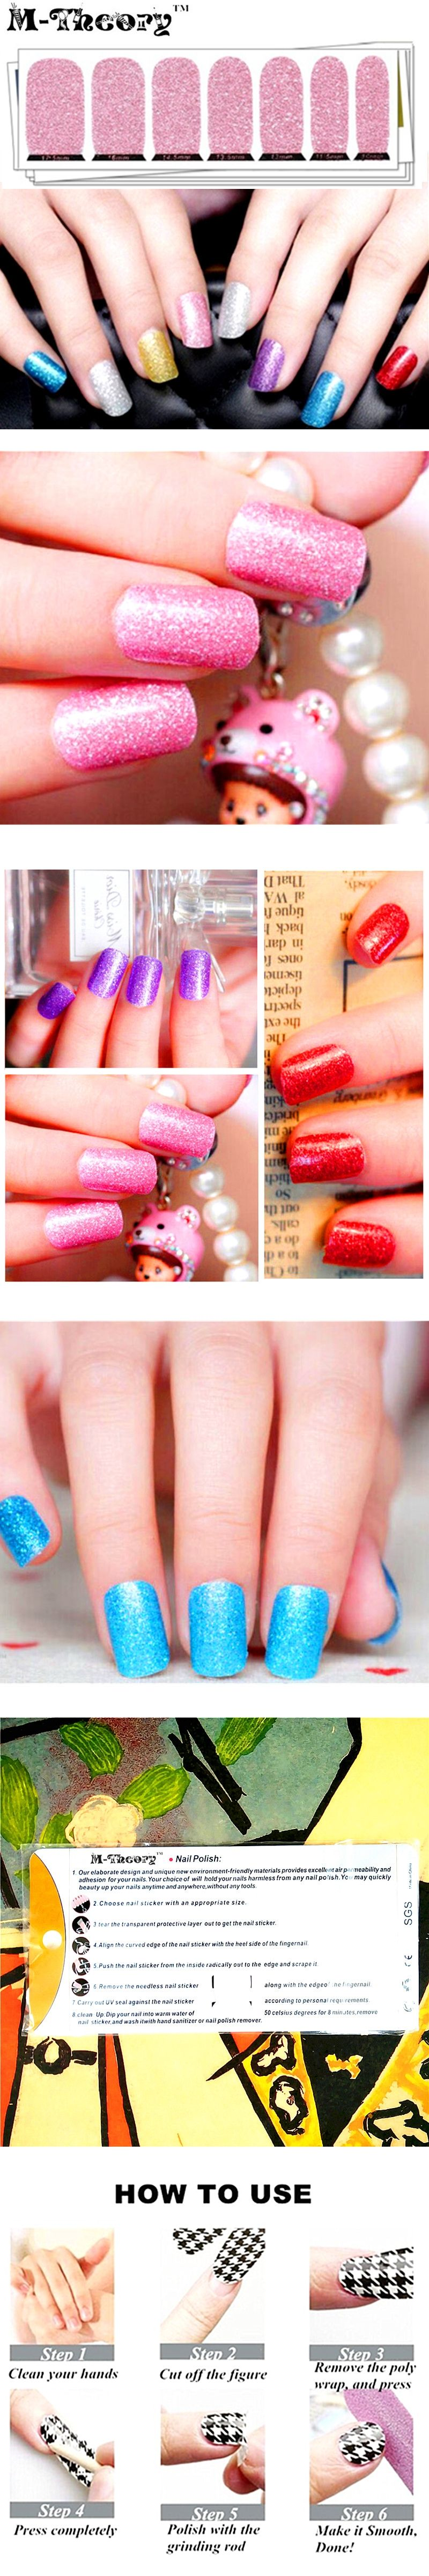 Twinkle Glossy Nails Wraps, 6 Colors Sparkle Nails Art Stickers ...